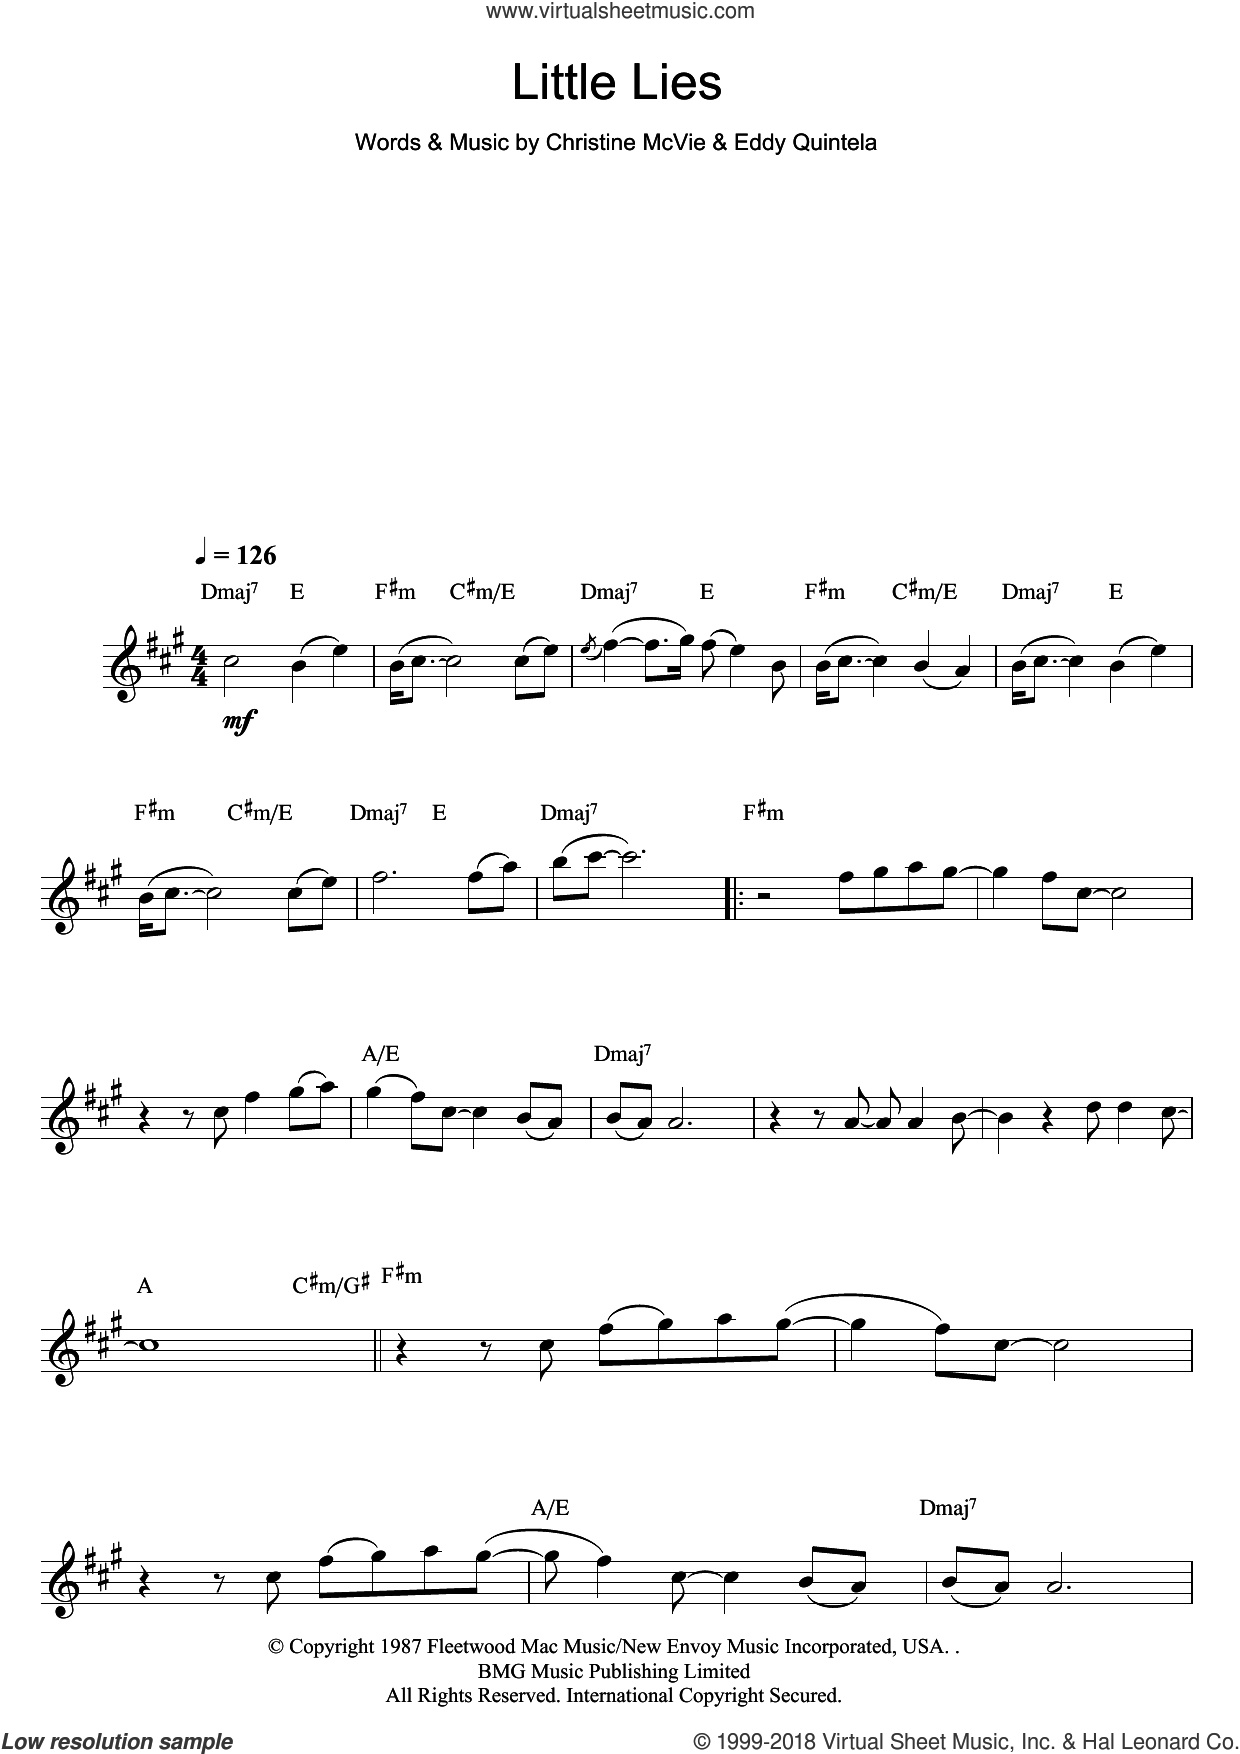 Little Lies sheet music for flute solo by Fleetwood Mac, Christine McVie and Eddy Quintela, intermediate skill level